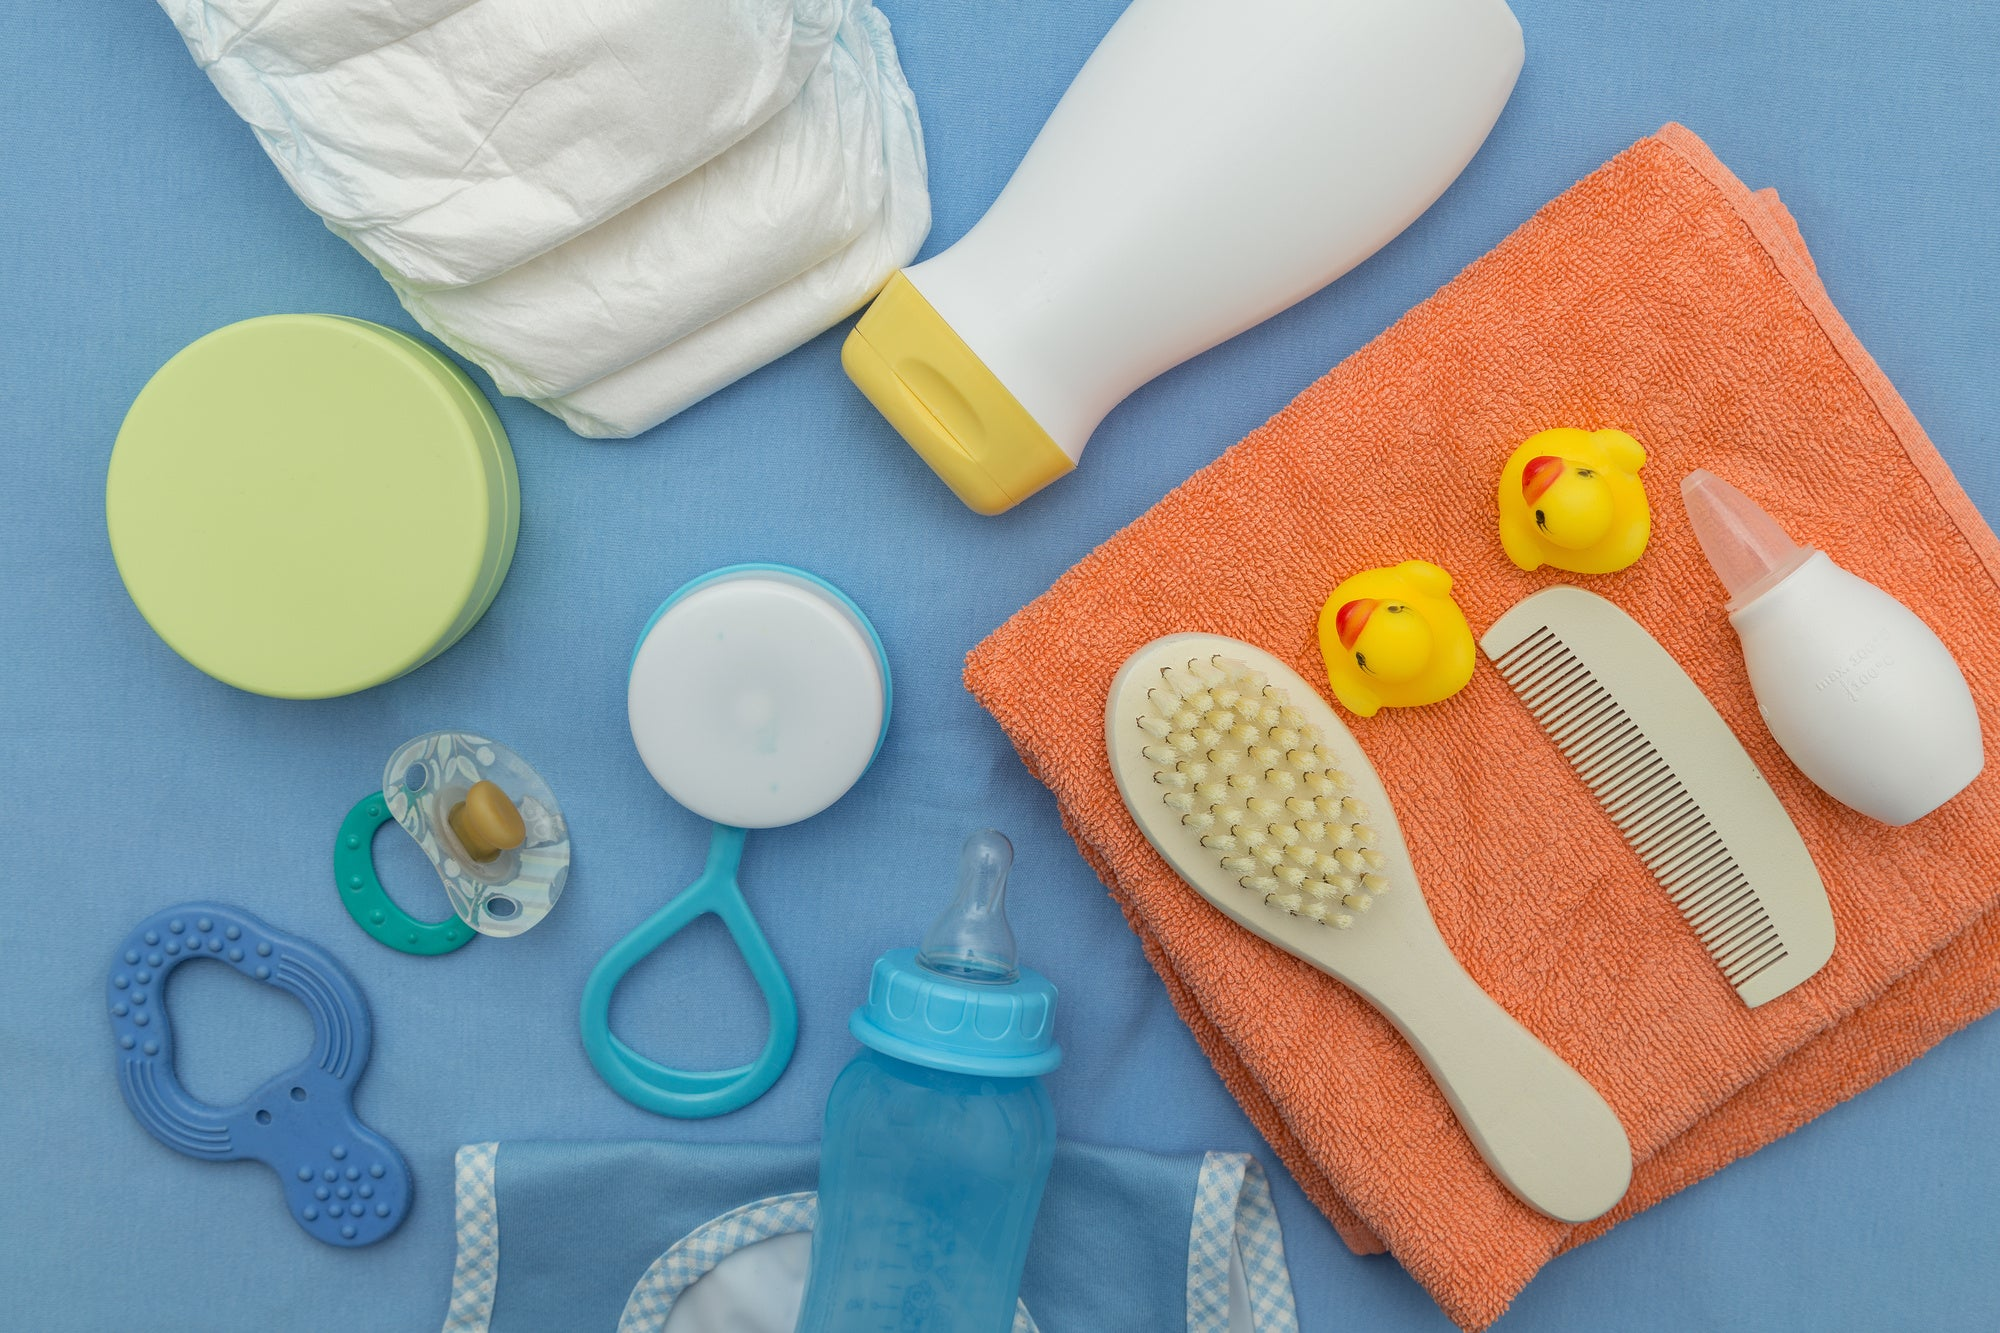 Top 6 Baby Items Every New Parent Needs